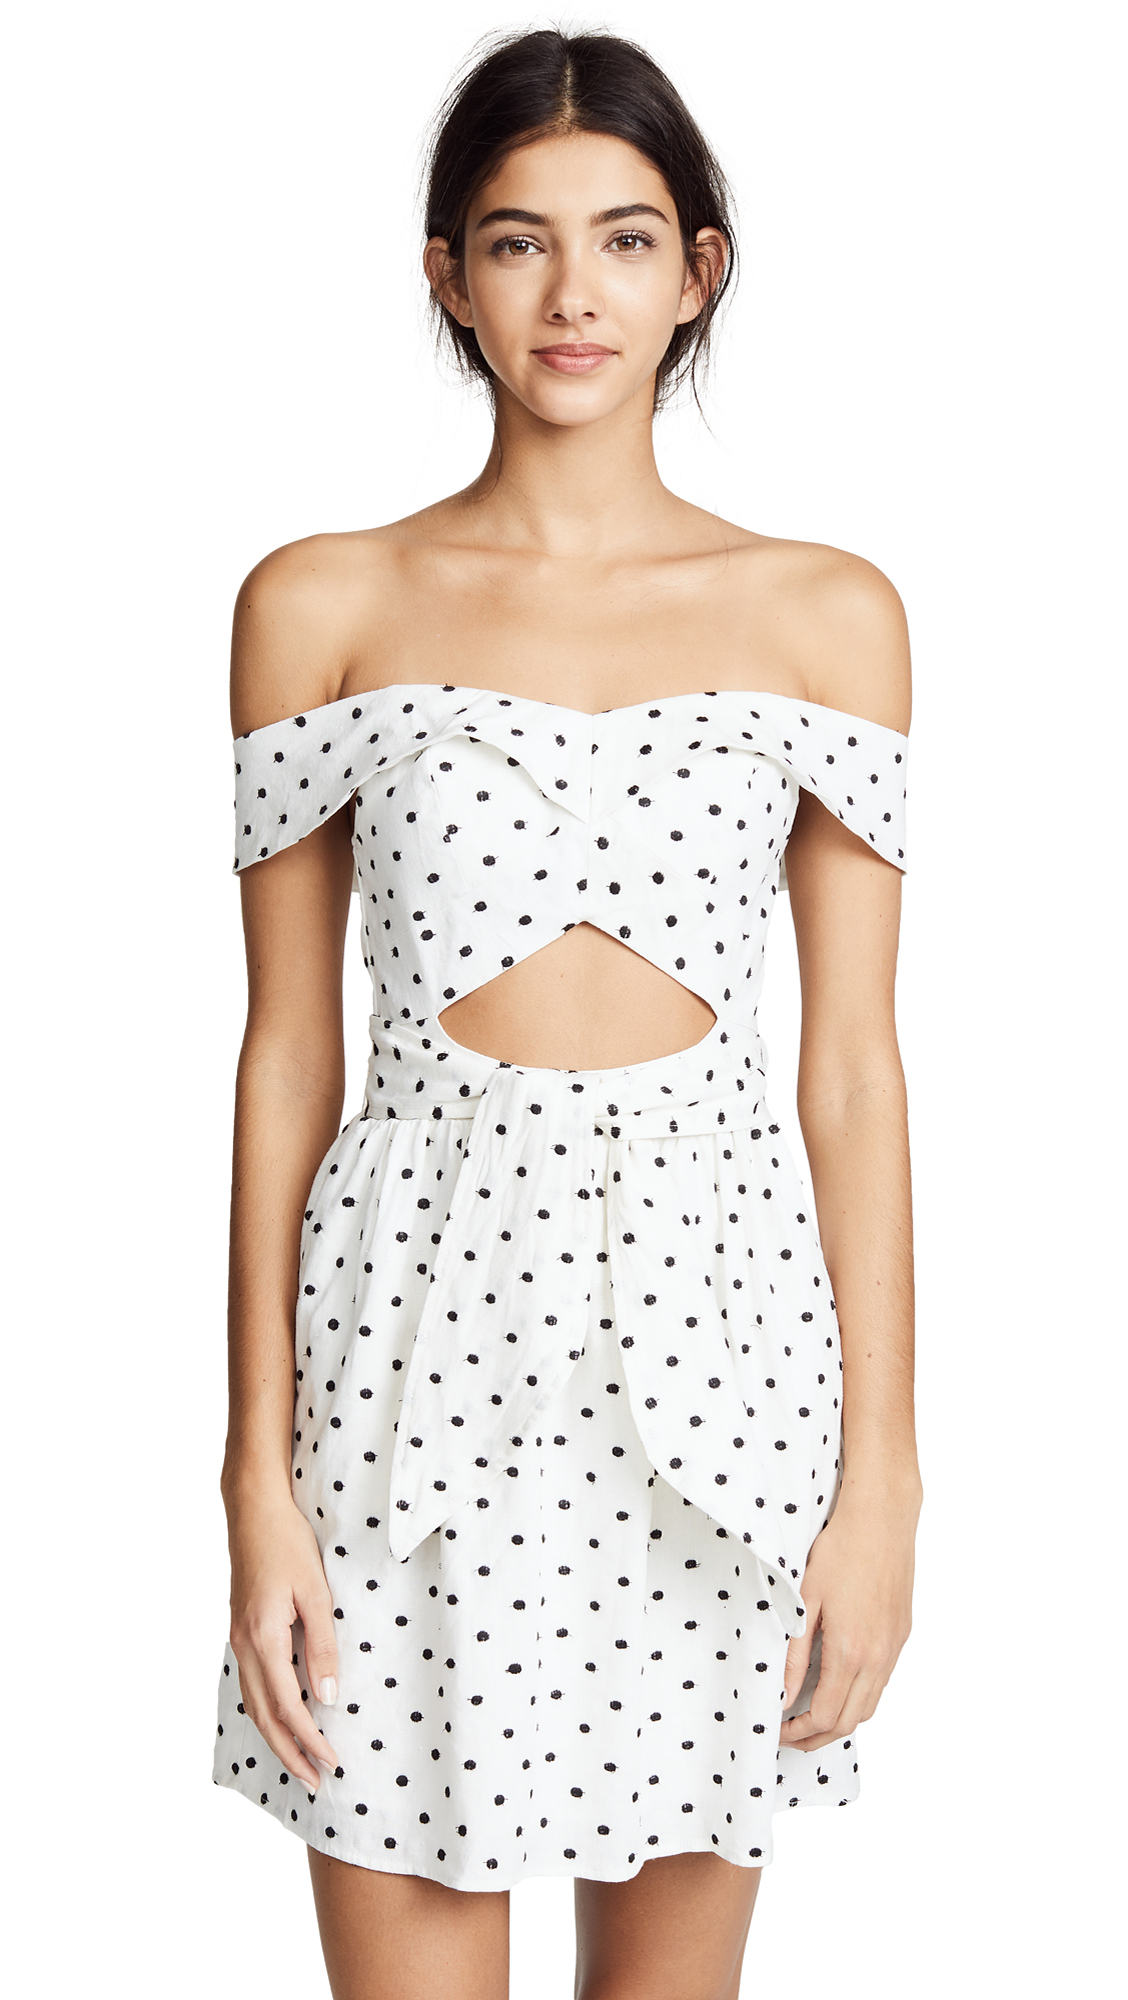 WAYF Capri Knotted Cutout Mini Dress In Ivory Polka Dot